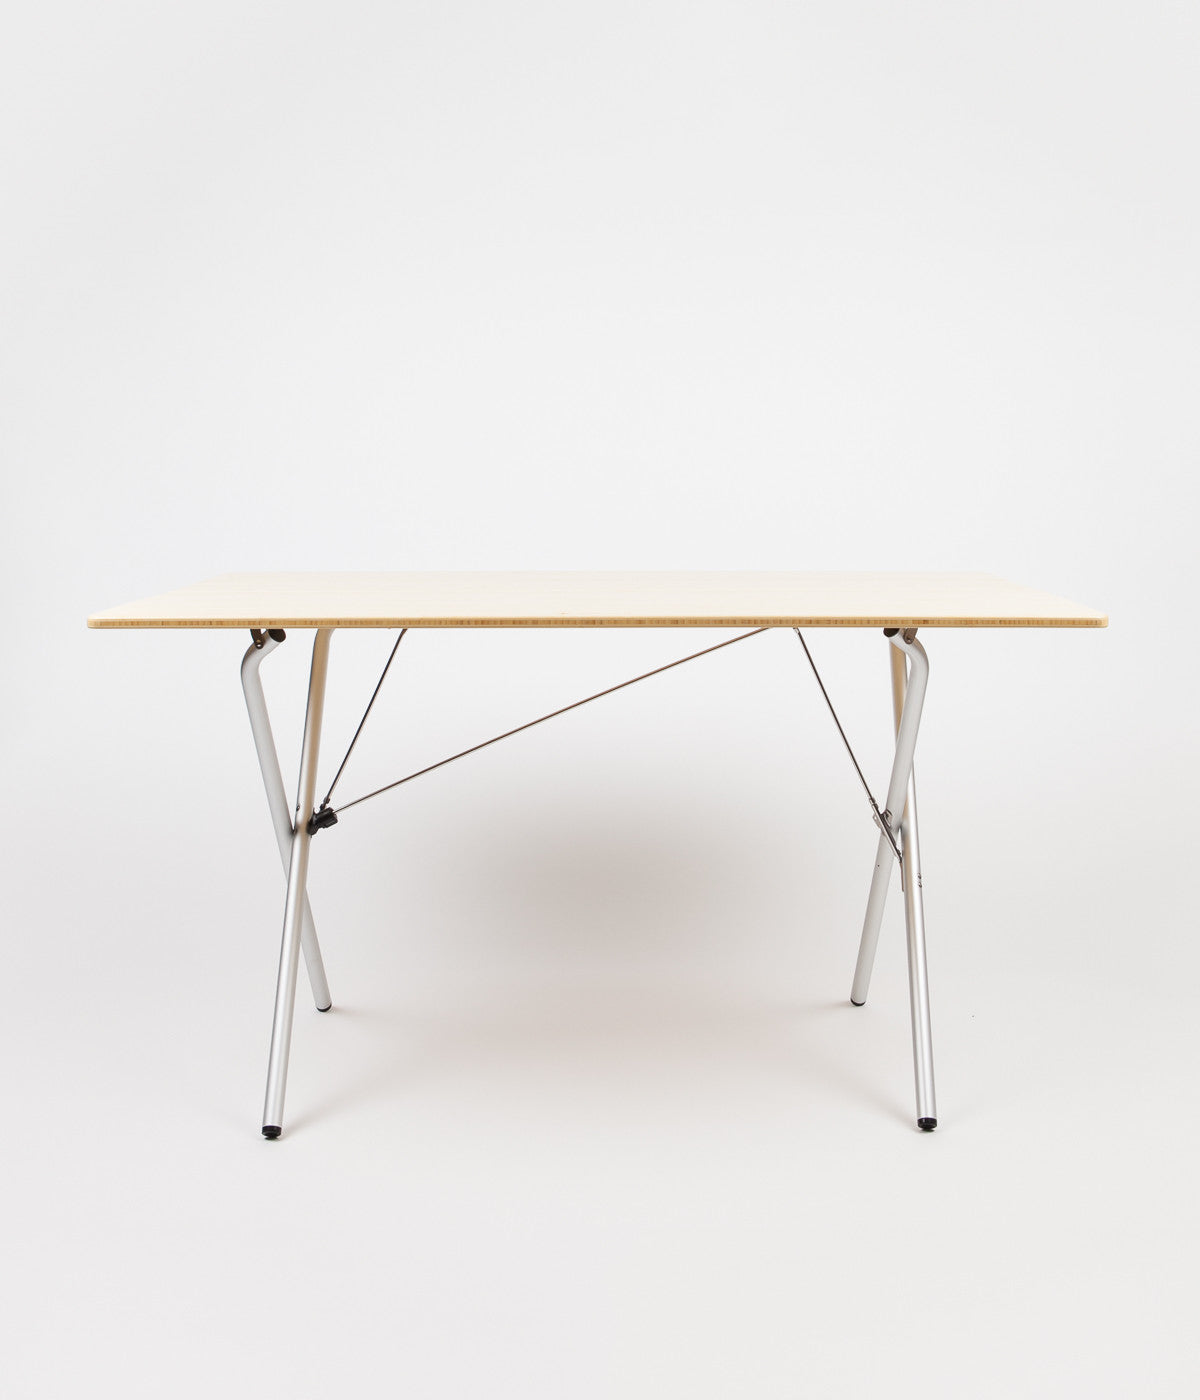 Snow Peak Long Single-Action Folding Table - Bamboo